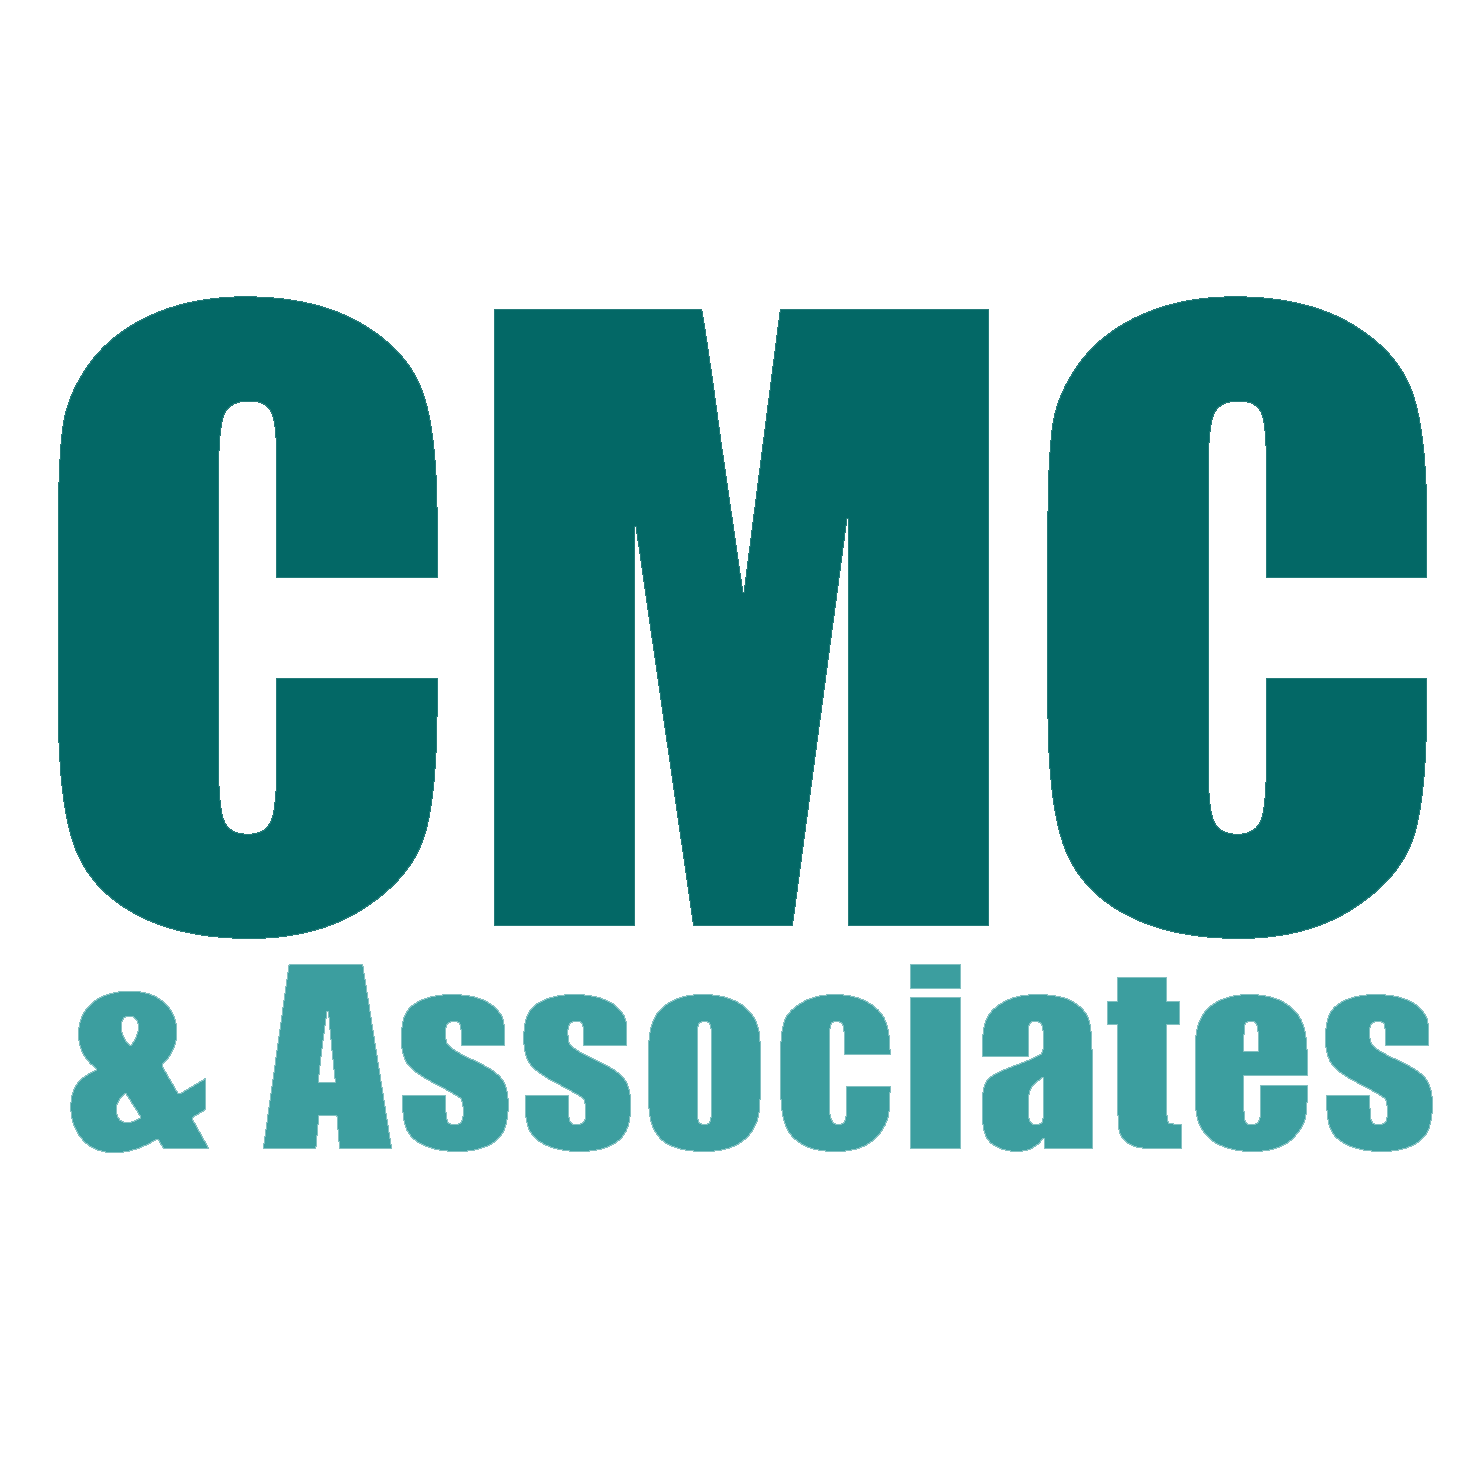 CMC New logo 2013 - square